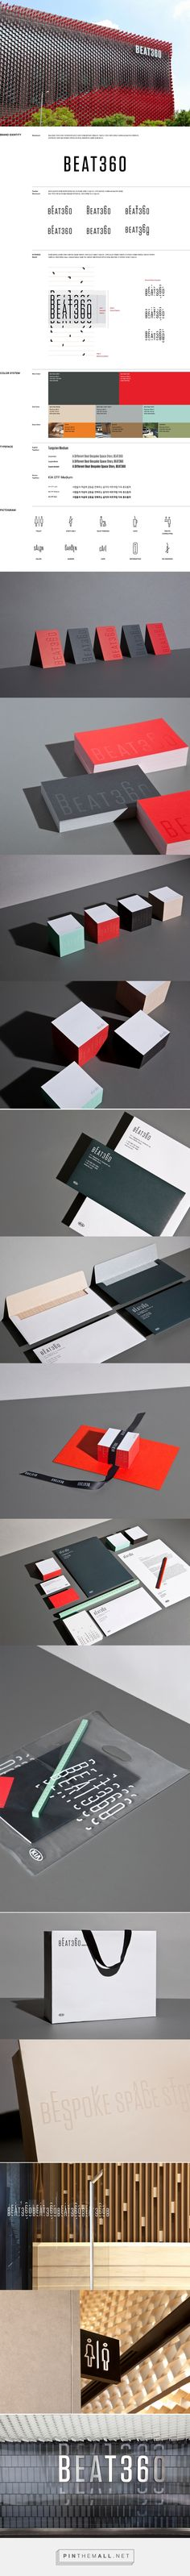 BEAT360 on Behance... - a grouped images picture - Pin Them All